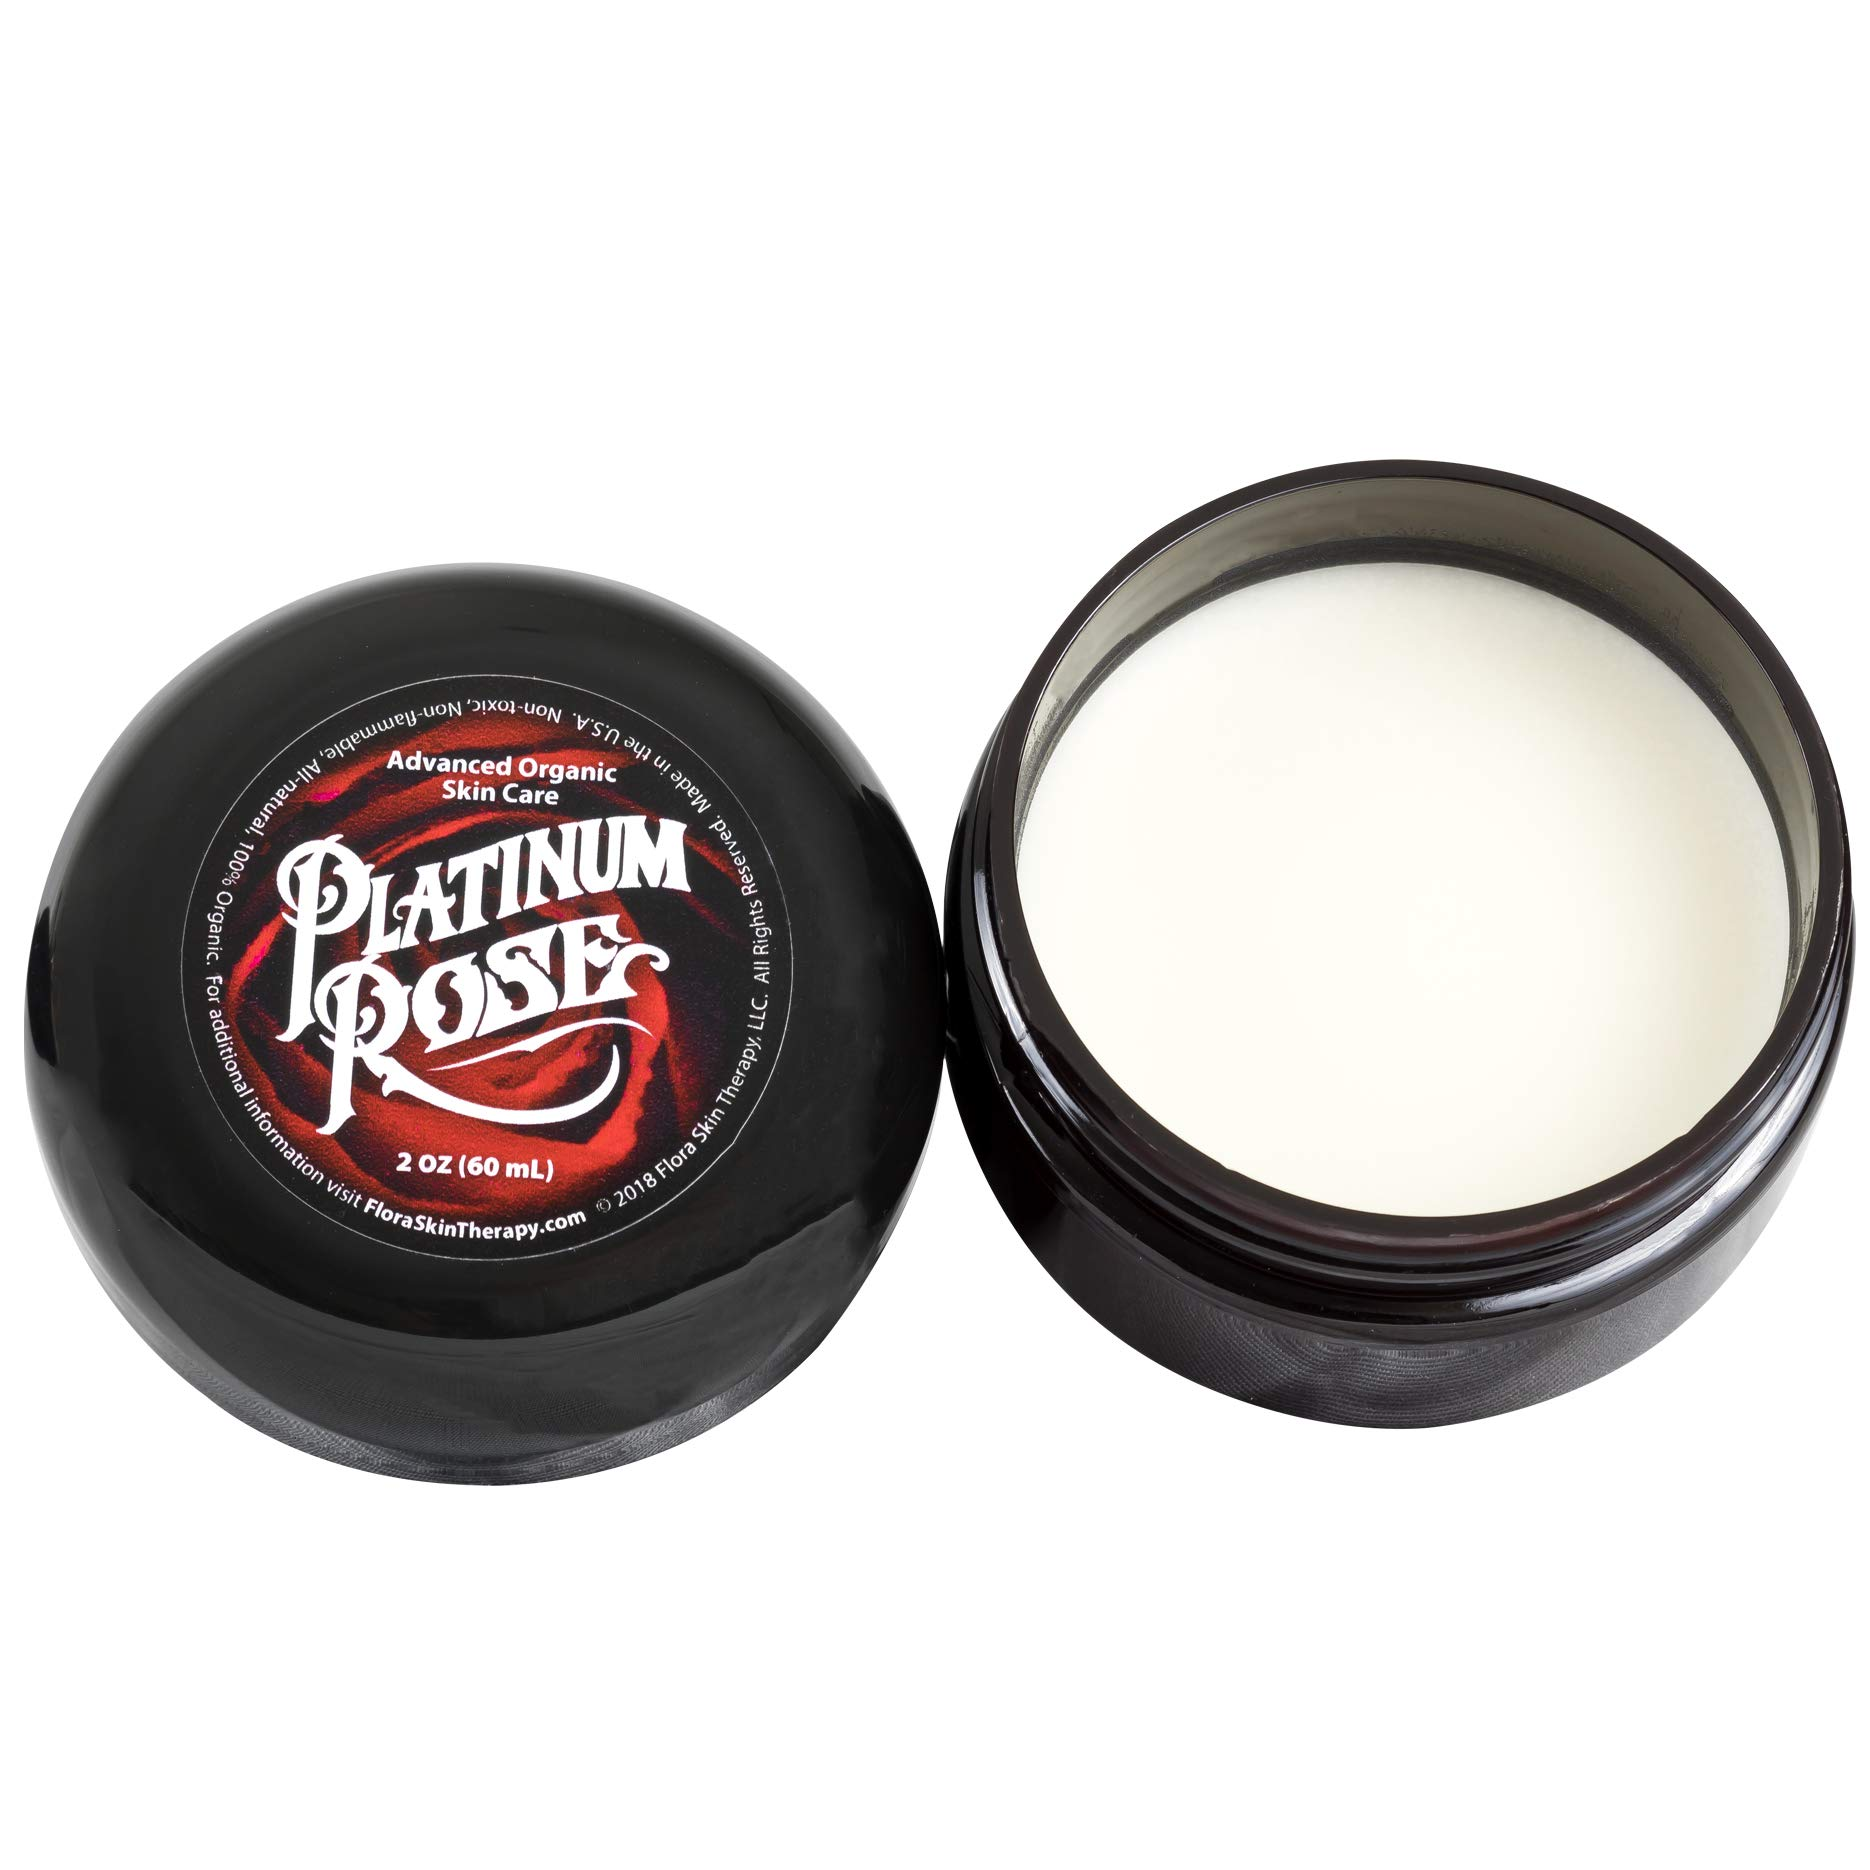 Platinum Rose Tattoo Butter for Before, During, and After the Tattoo Process - Advanced Organic Skin Care - Heals, Lubricates, Moisturizes and Repairs Skin 100% Natural and Organic Ingredients (2 oz) by Flora Skin Therapy